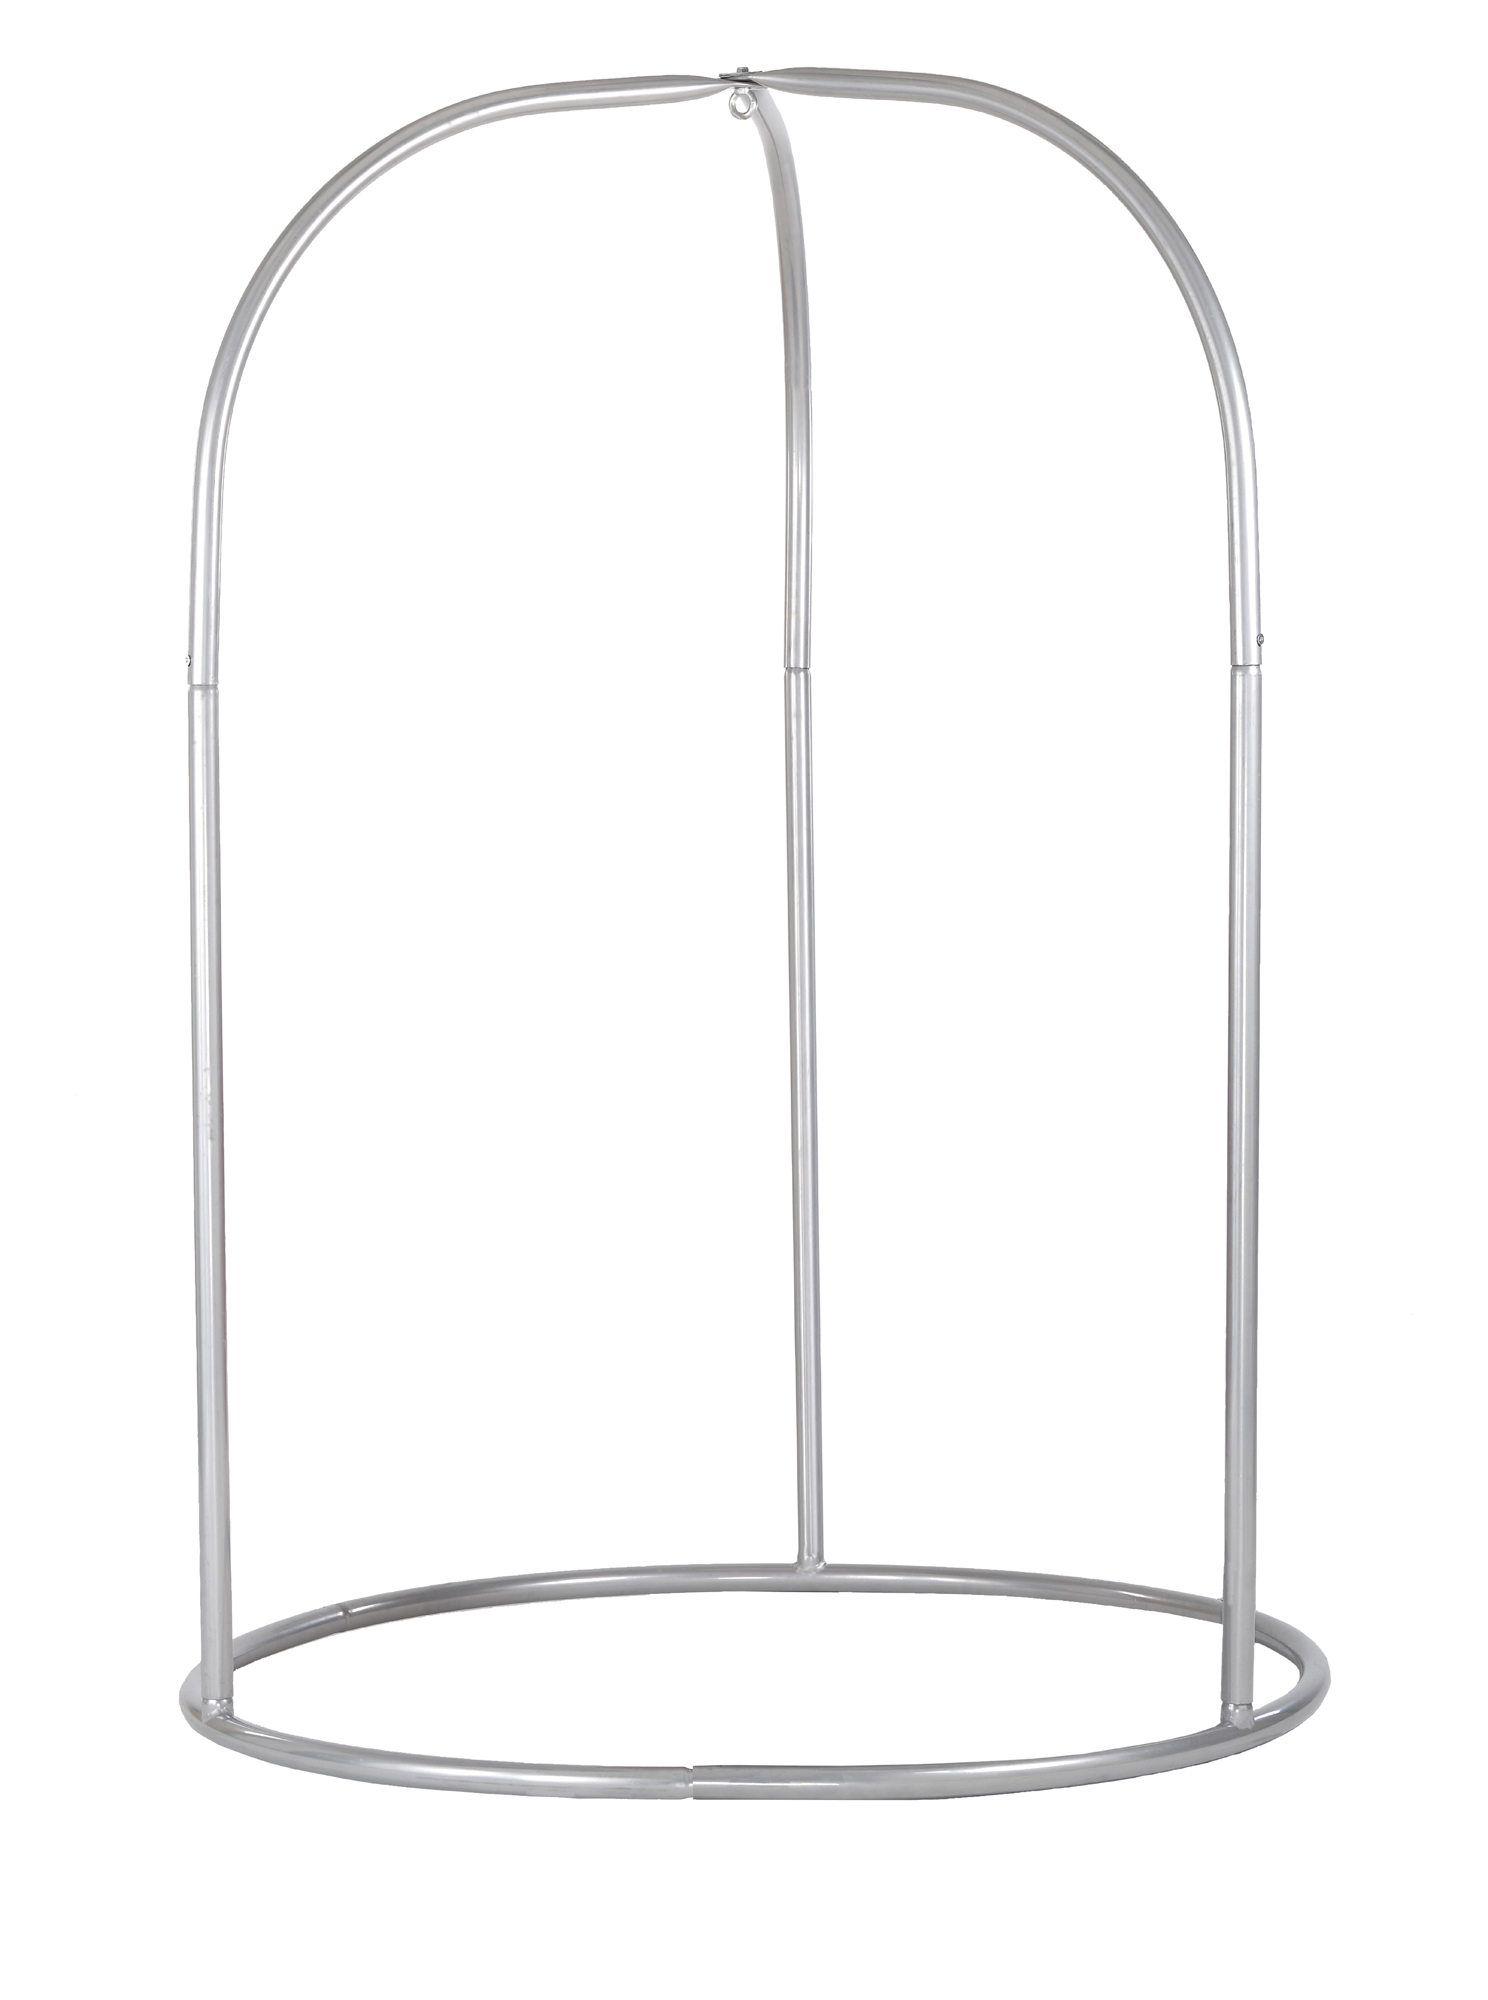 adsutable round steel hammock chair stand very stable